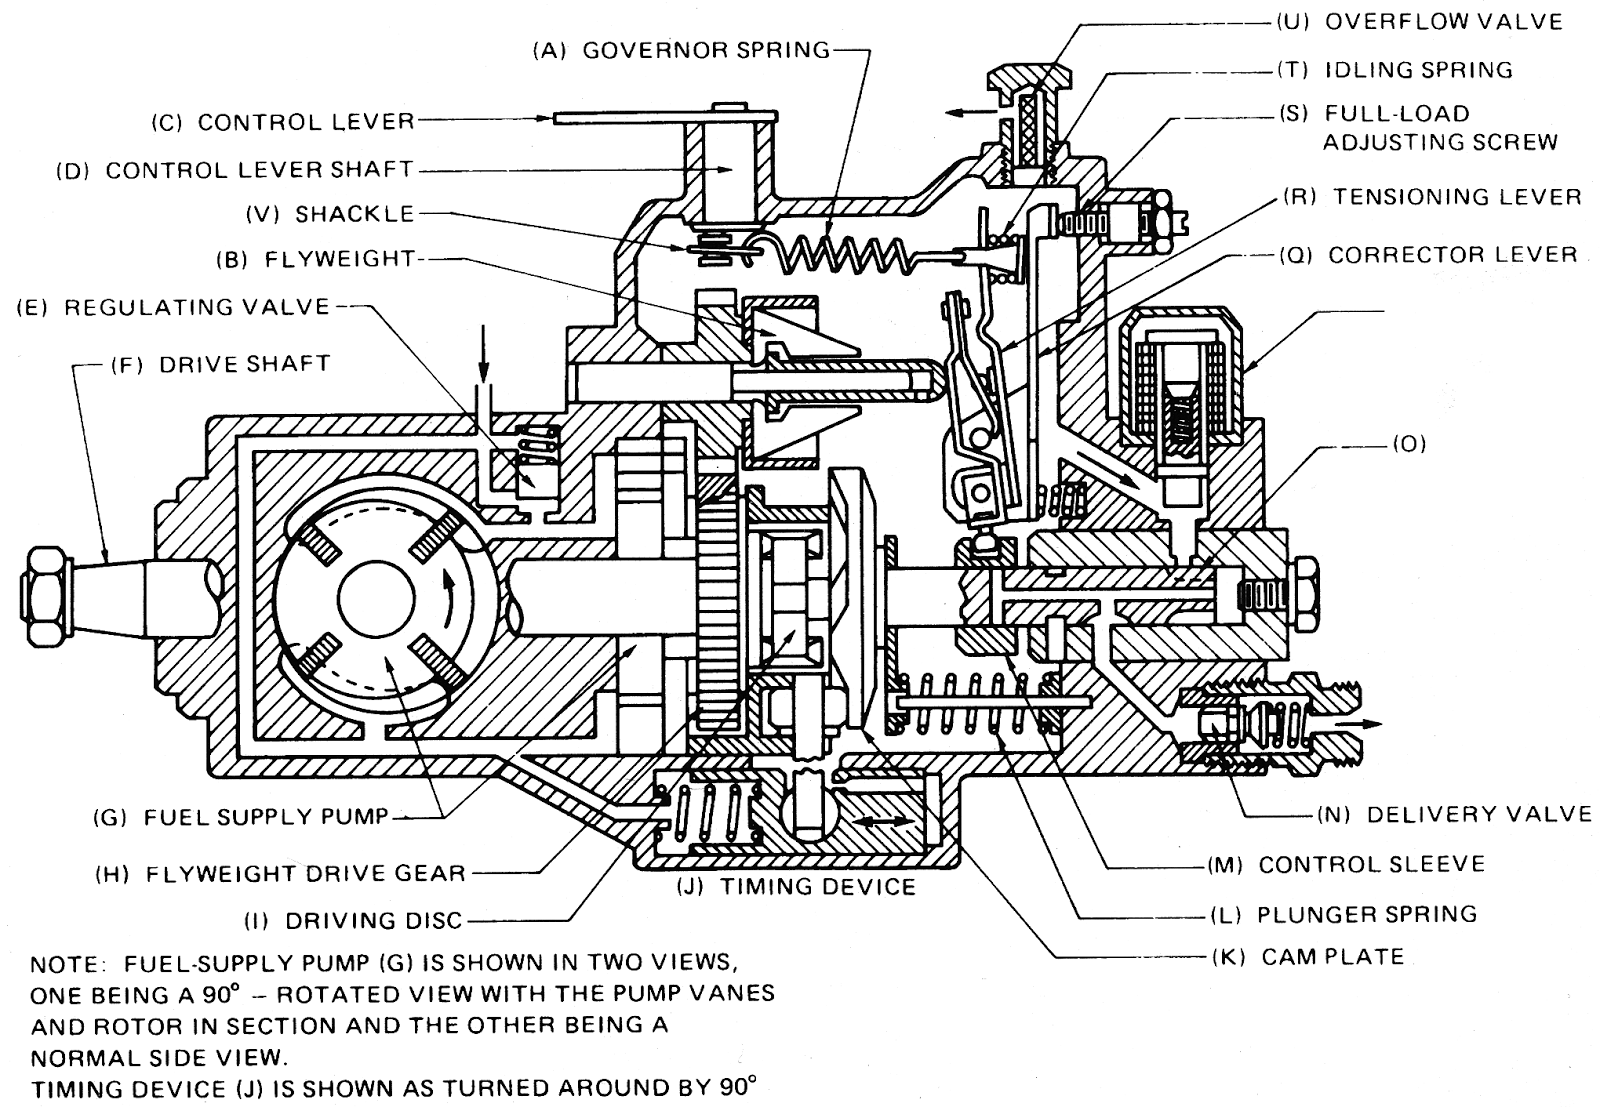 hight resolution of delphi injection pump parts within diagram wiring and lucas fuel injector pump parts cav fuel injection pump diagram